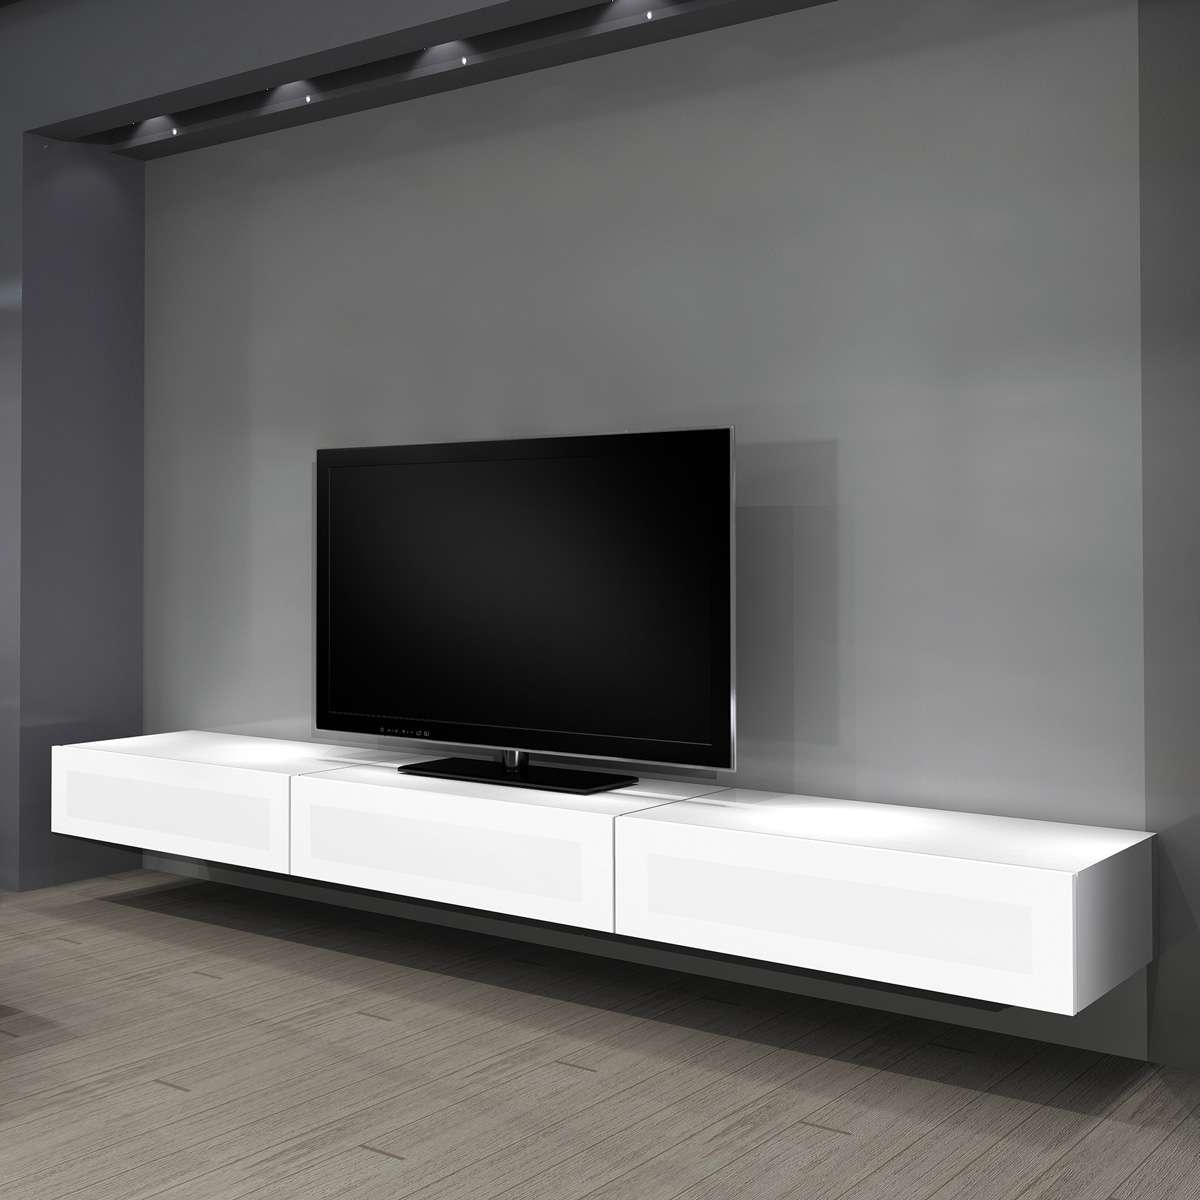 Floating Long White Wooden Cabinet With Tv On The Top Placed On Pertaining To Long White Tv Cabinets (View 11 of 20)